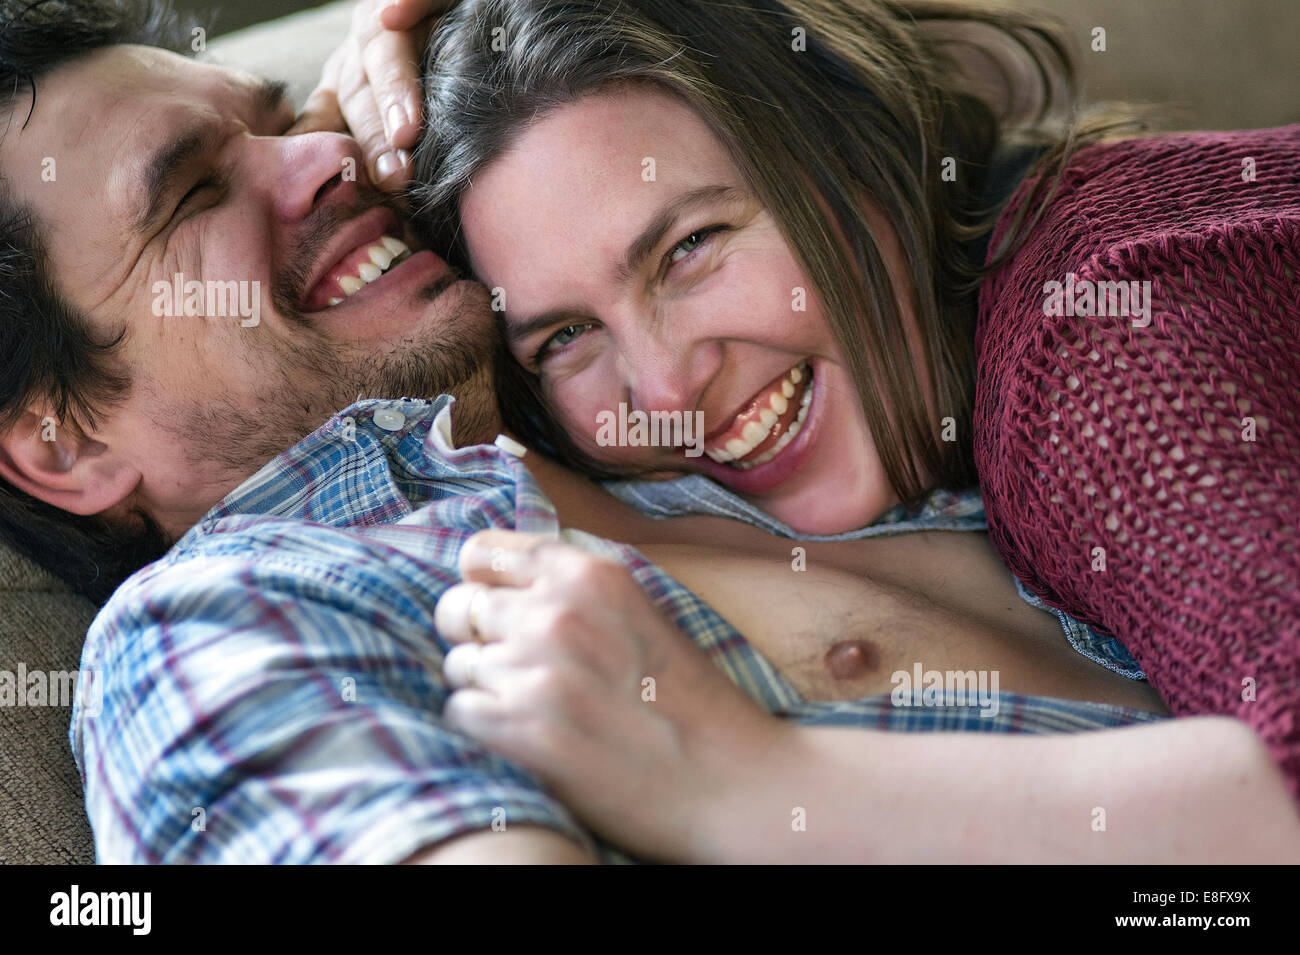 View of cuddling couple - Stock Image